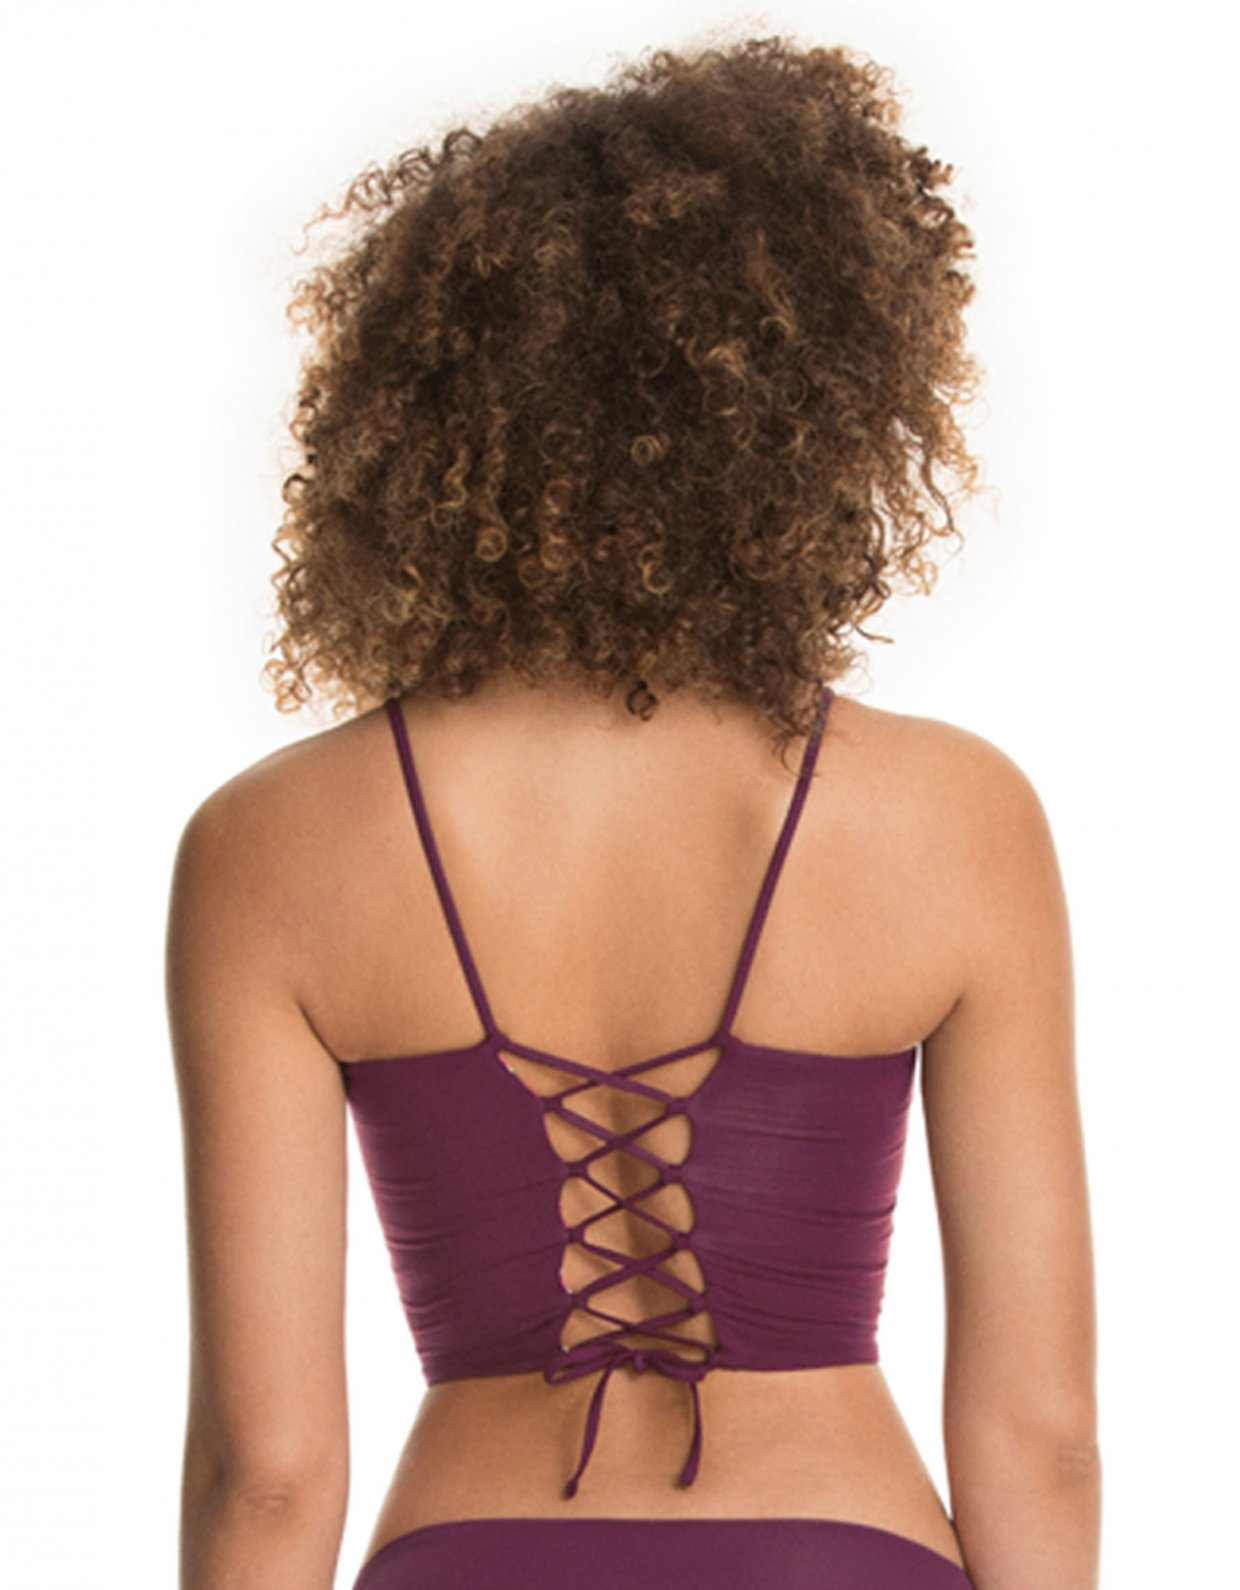 Maaji Vintage grape chicka bikini